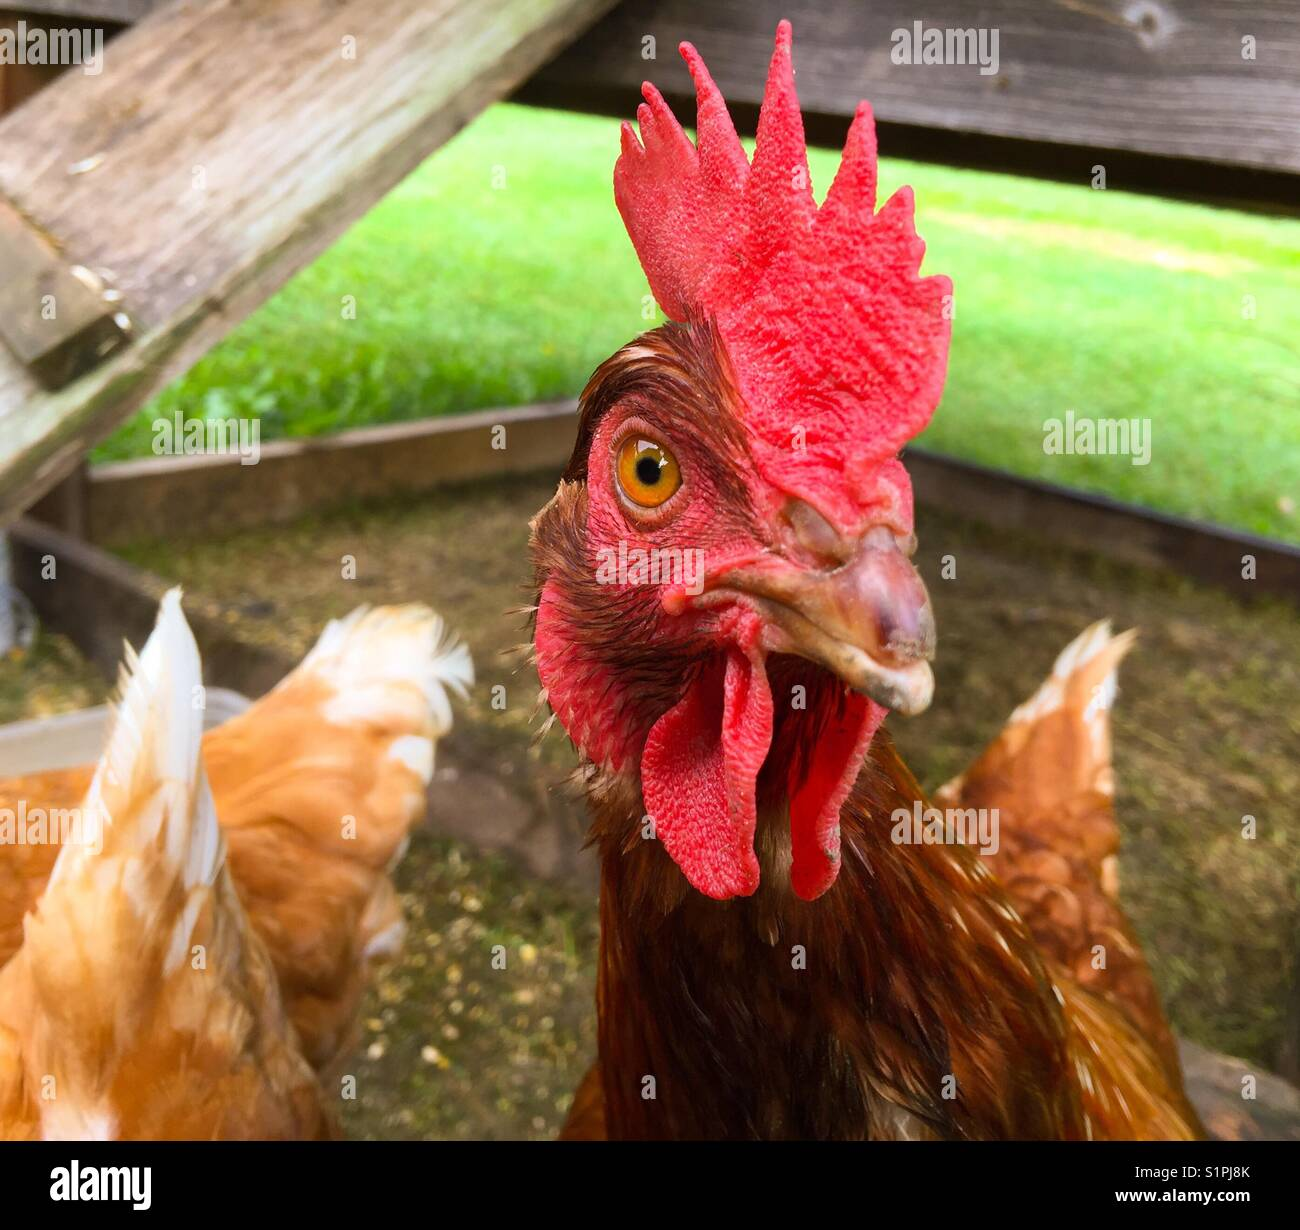 Rhode Island Red Chicken looking at camera - Stock Image